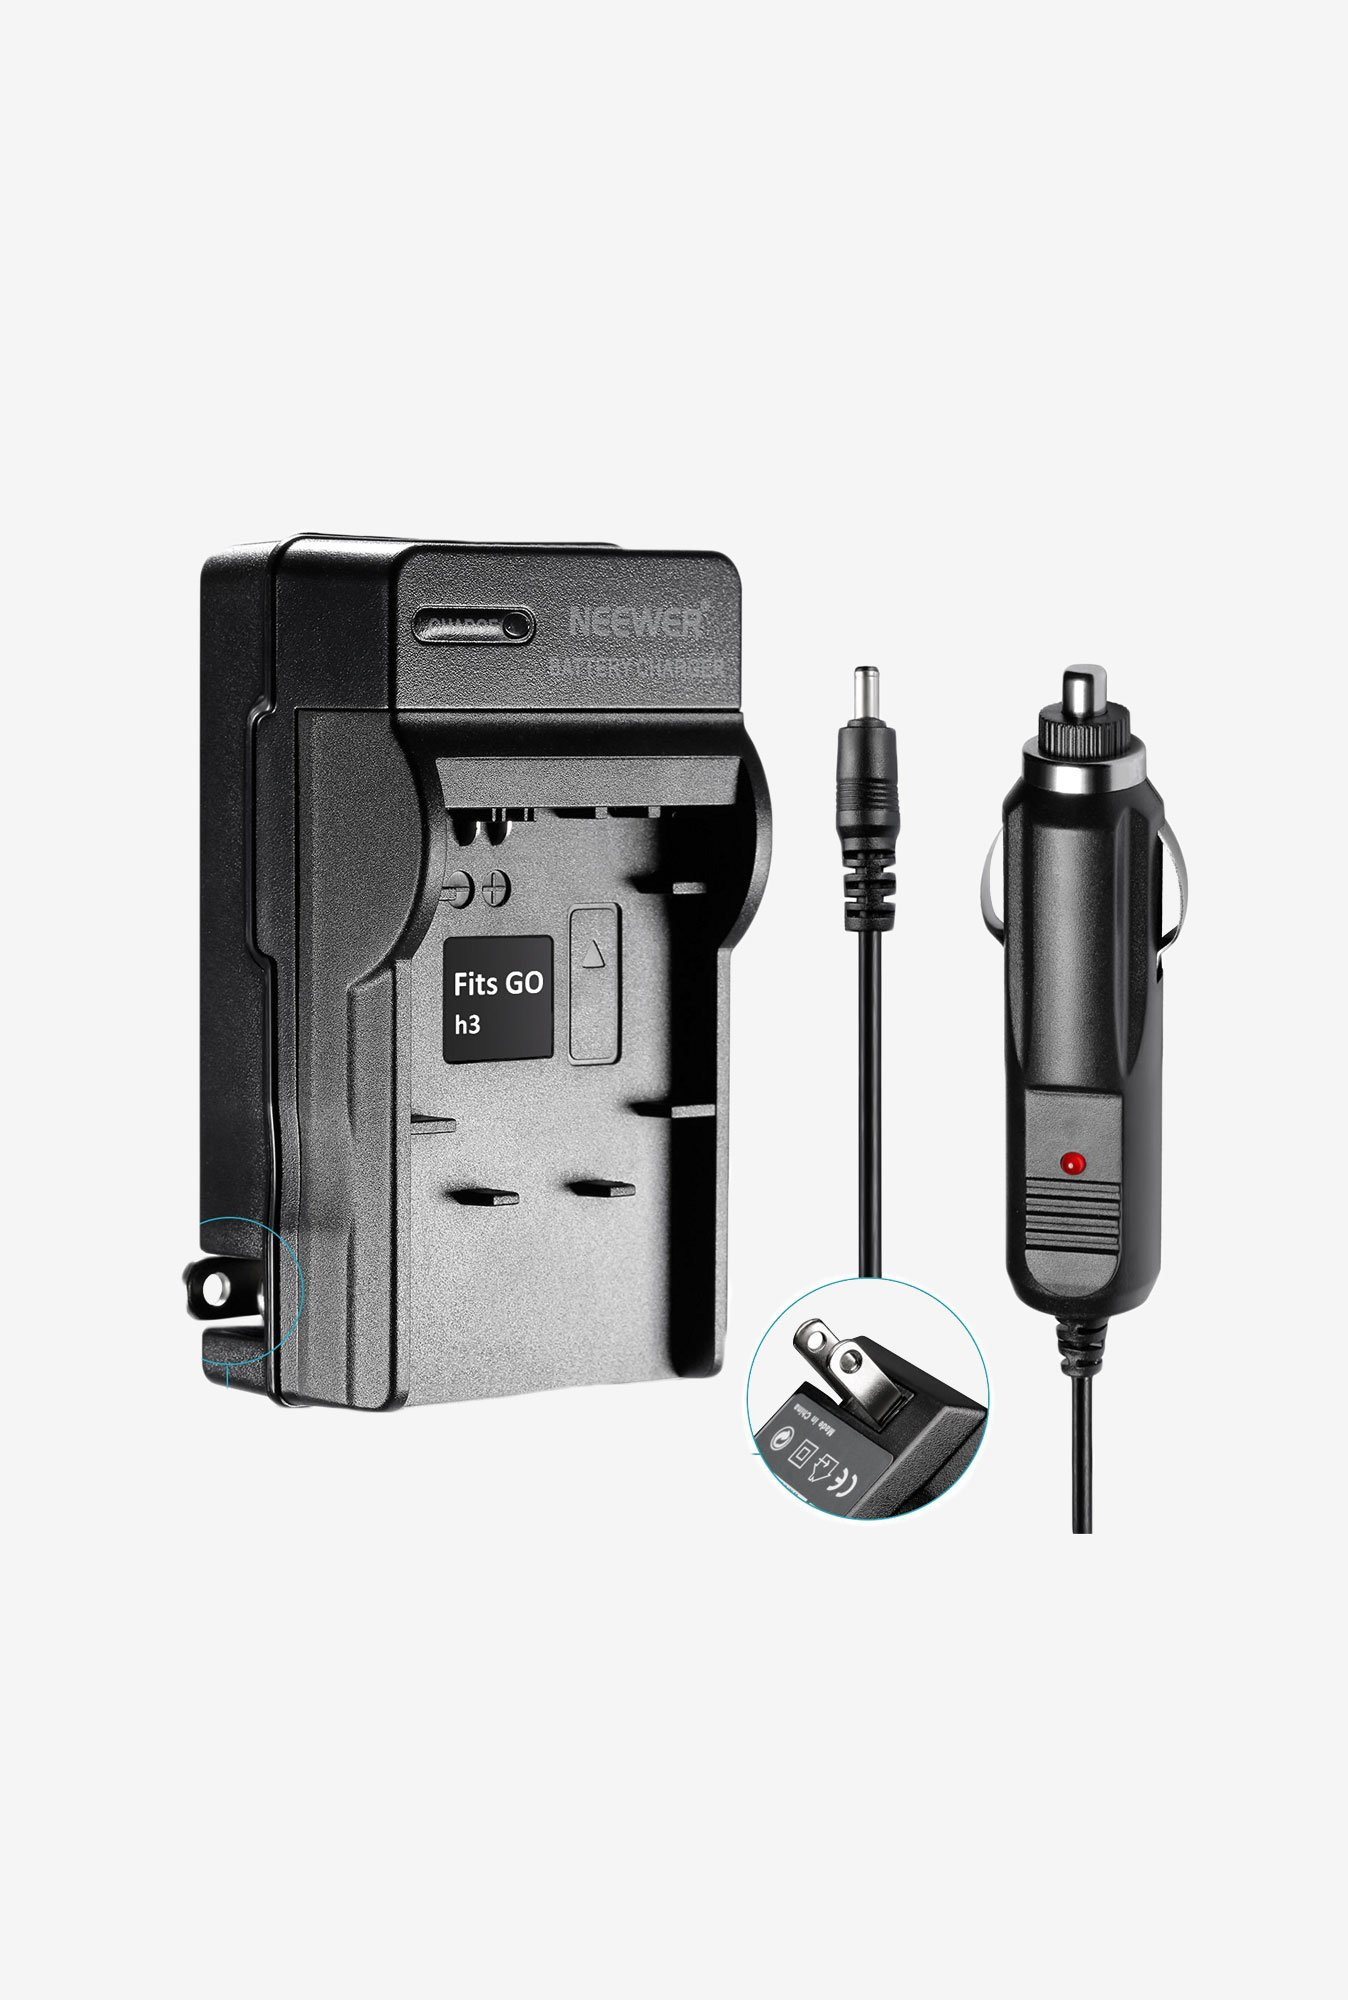 Neewer Dual Battery Charger And Car Adaptor Us Plug (Black)